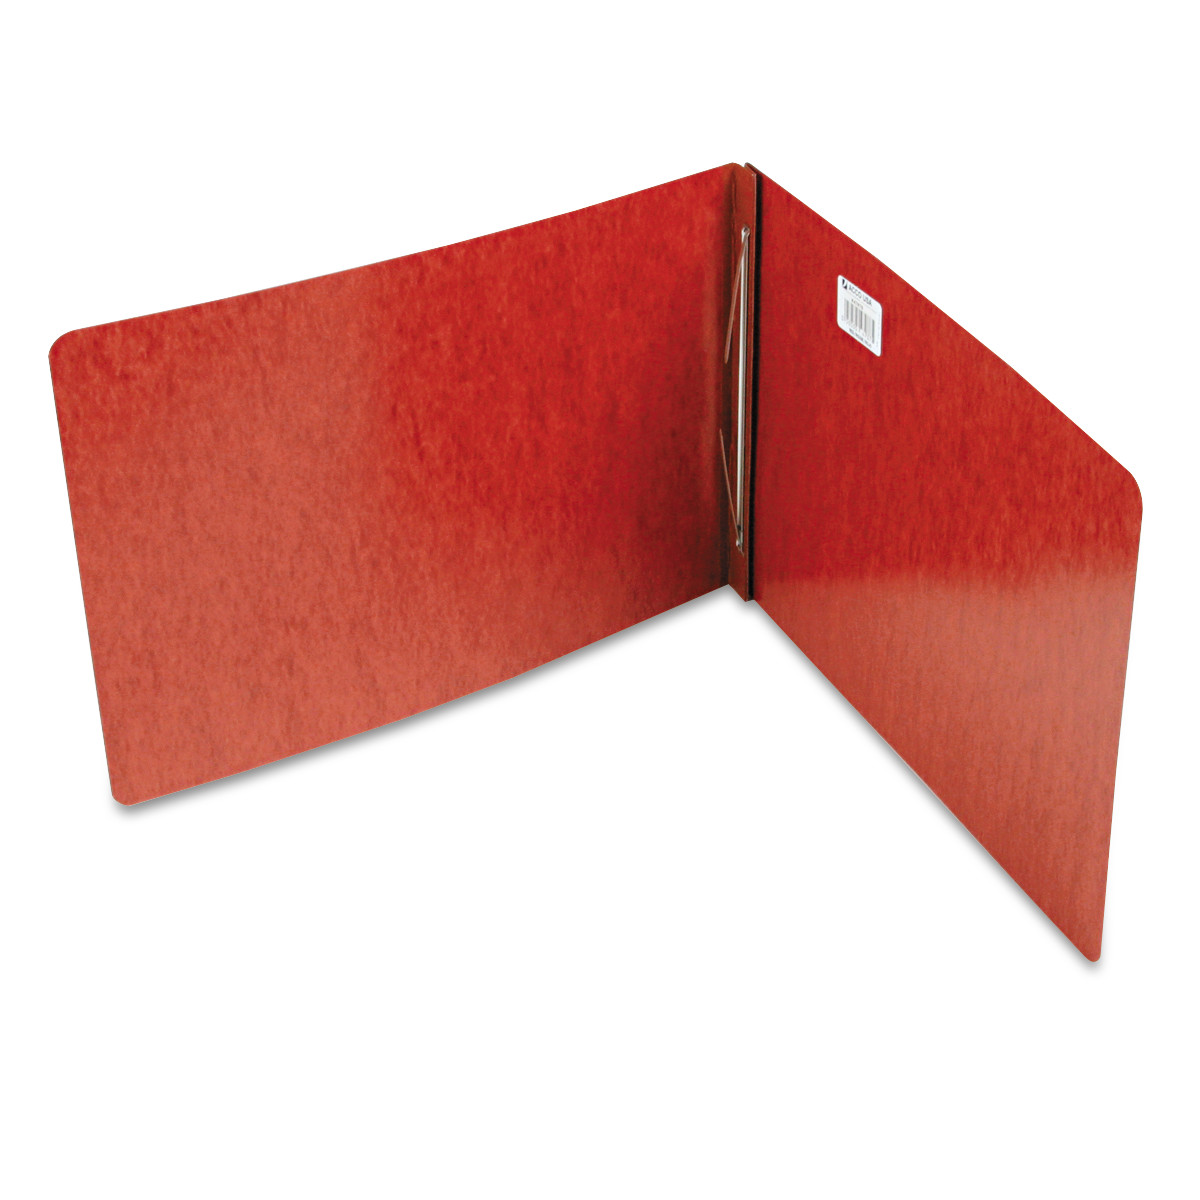 "ACCO Pressboard Report Cover, Prong Clip, 11 x 17, 3"" Capacity, Red by ACCO BRANDS, INC."